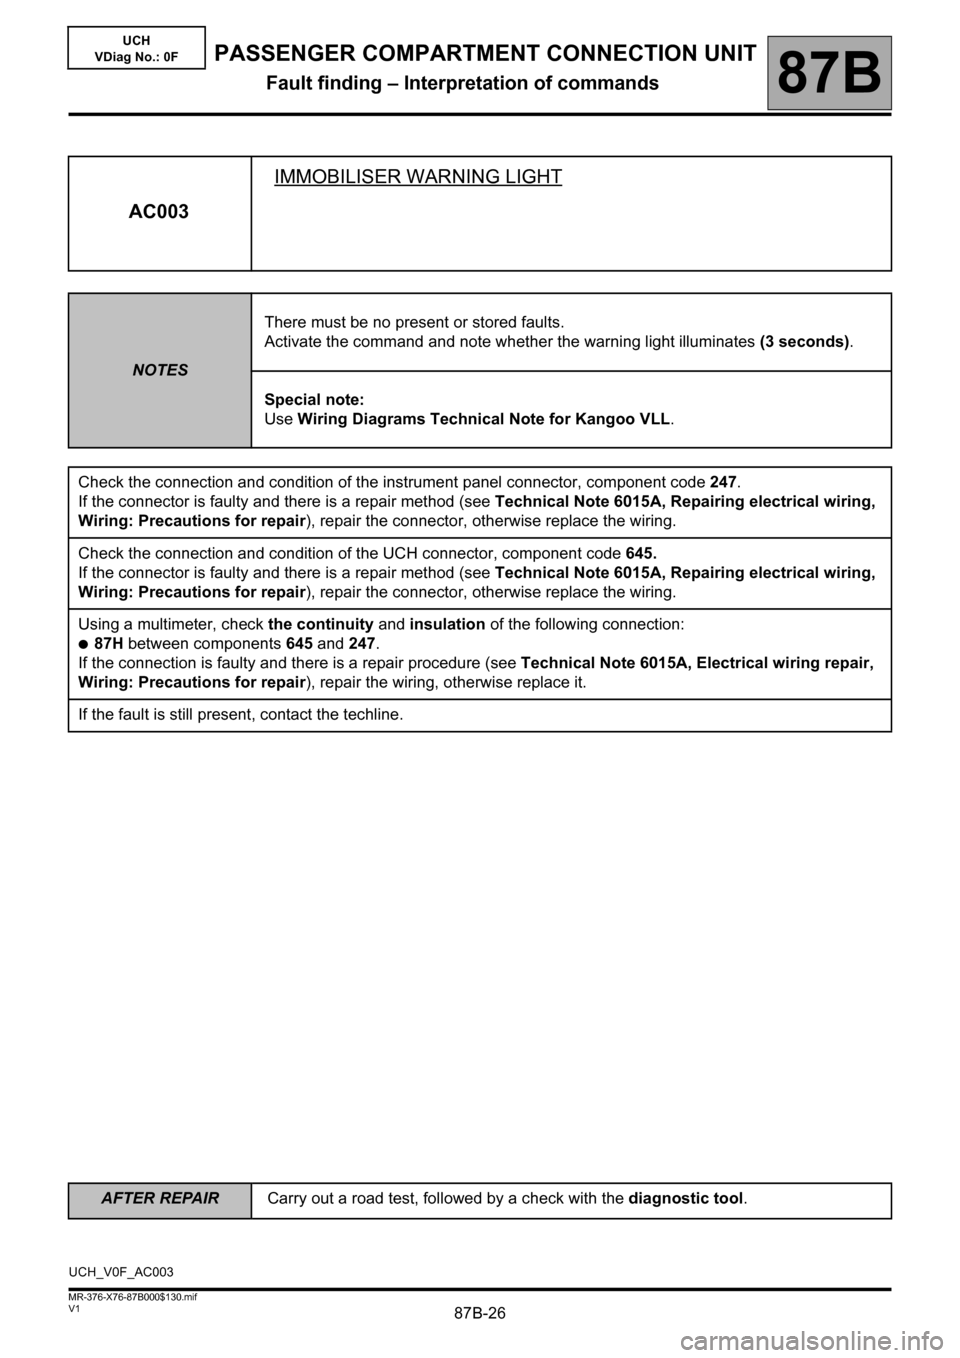 RENAULT KANGOO 2013 X61 / 2.G Passenger Comparment Connection Unit Workshop Manual, Page 26